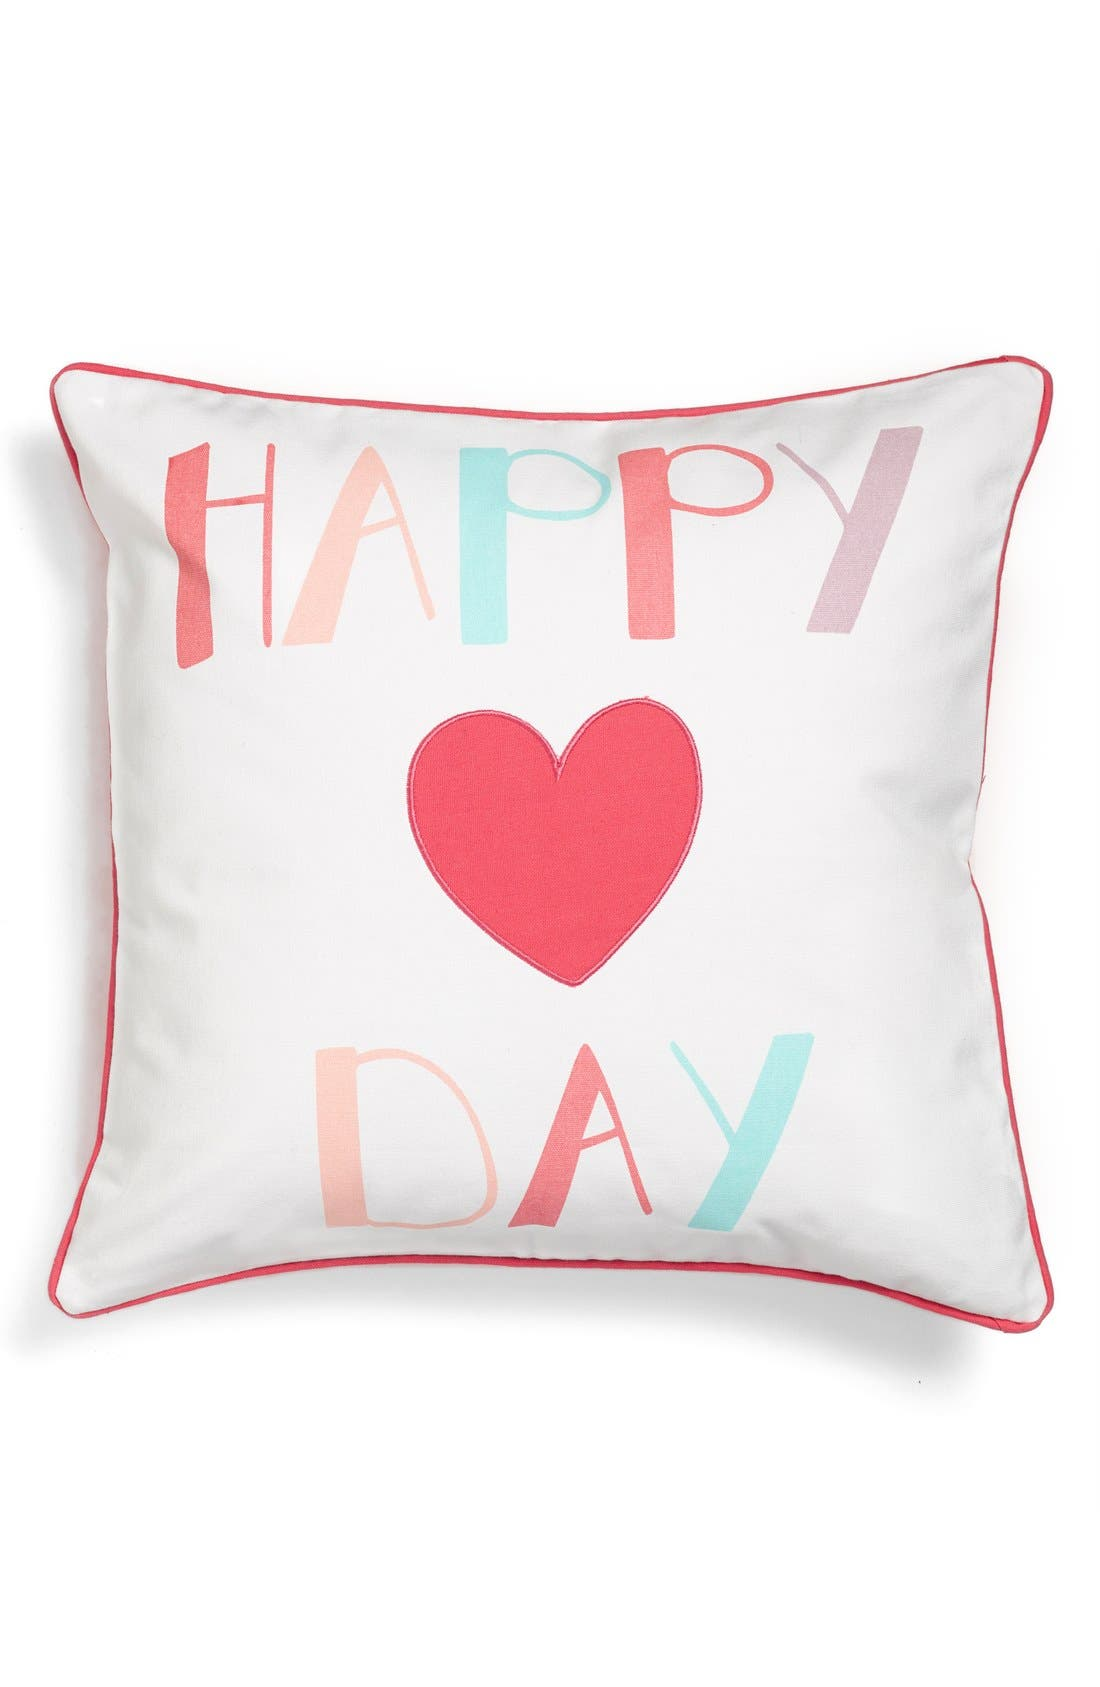 Alternate Image 1 Selected - Levtex 'Happy Day' Pillow